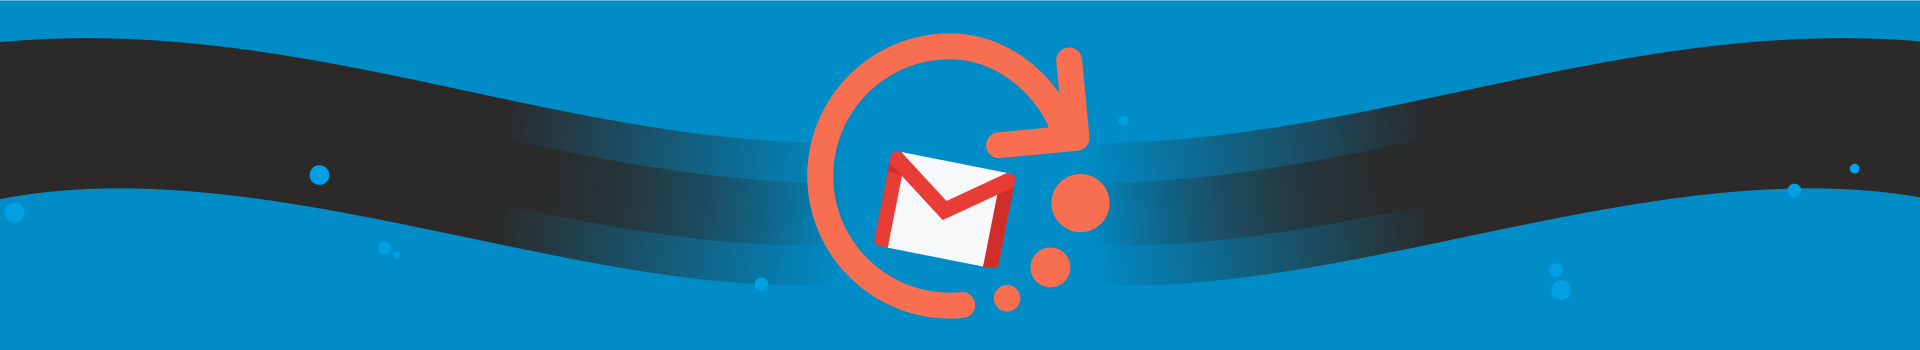 3 Steps to Recover Hacked Gmail Account [Solved]